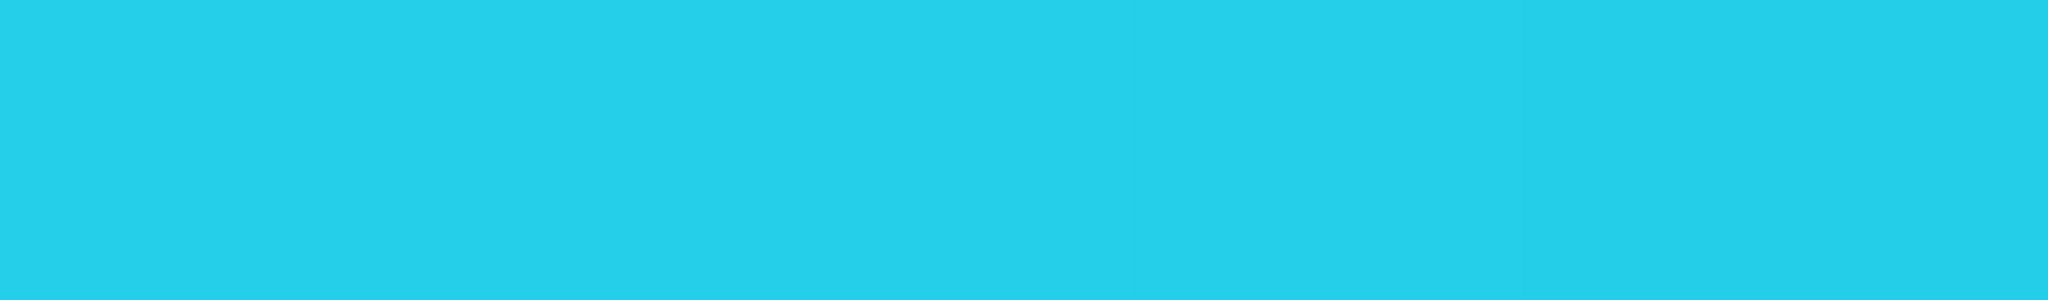 HU 155515 ABS Edge Cyan Blue Smooth Gloss 90°